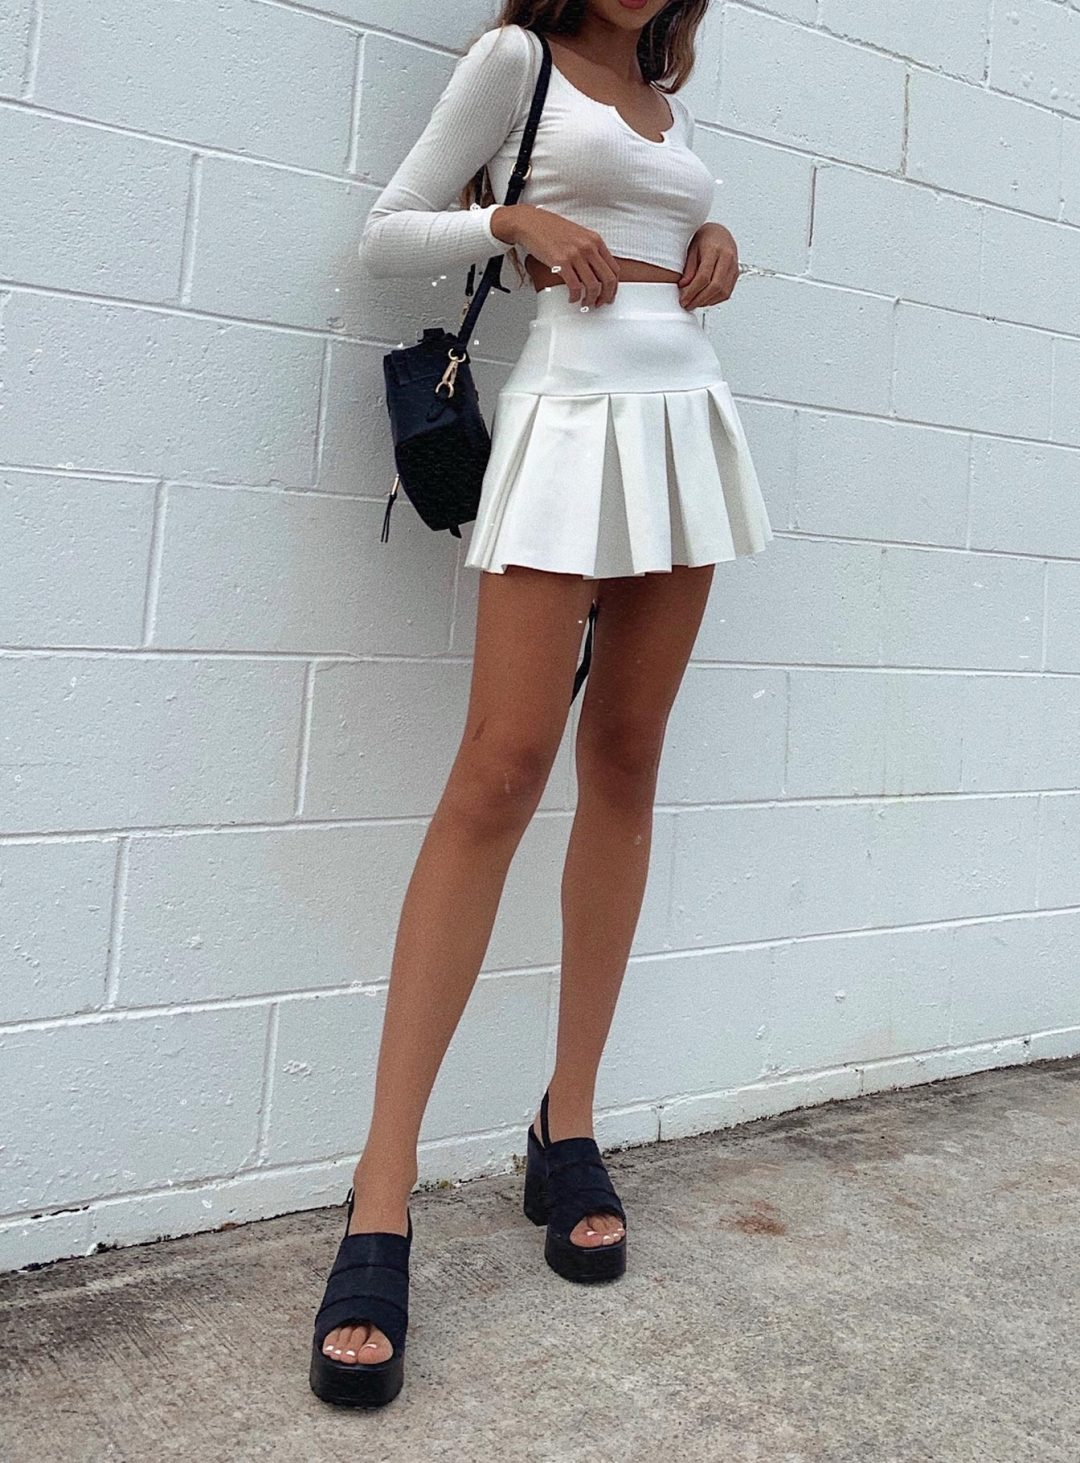 tWhite ennis skirt outfits with crop top